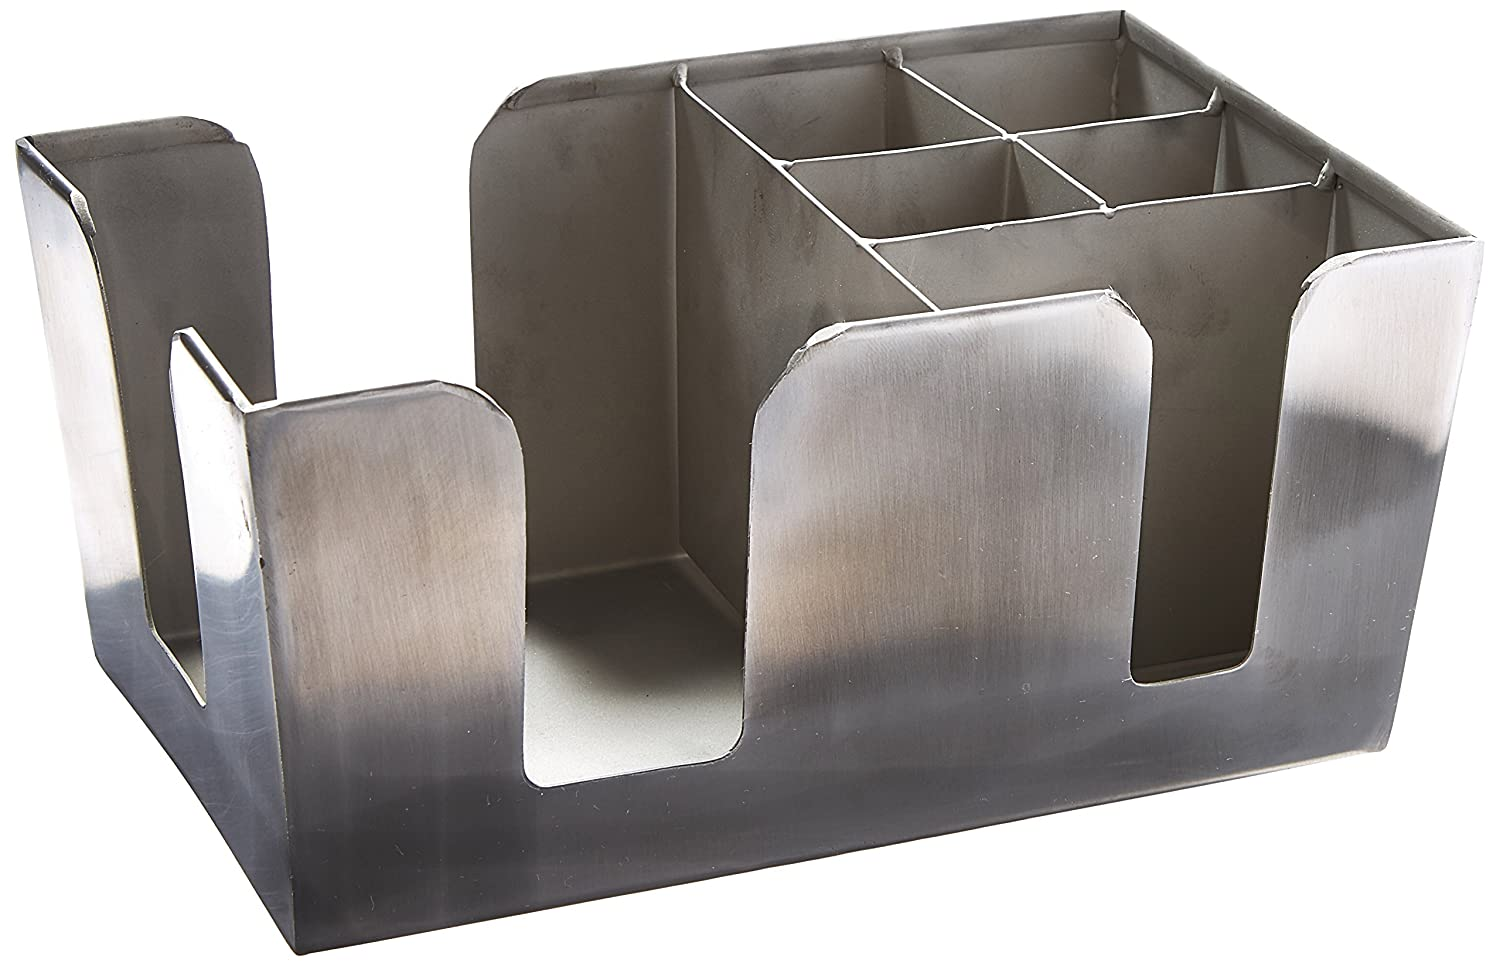 American Metalcraft BARS7 Stainless Steel Bar Caddy with 6 Compartments, Satin Finish, Silver